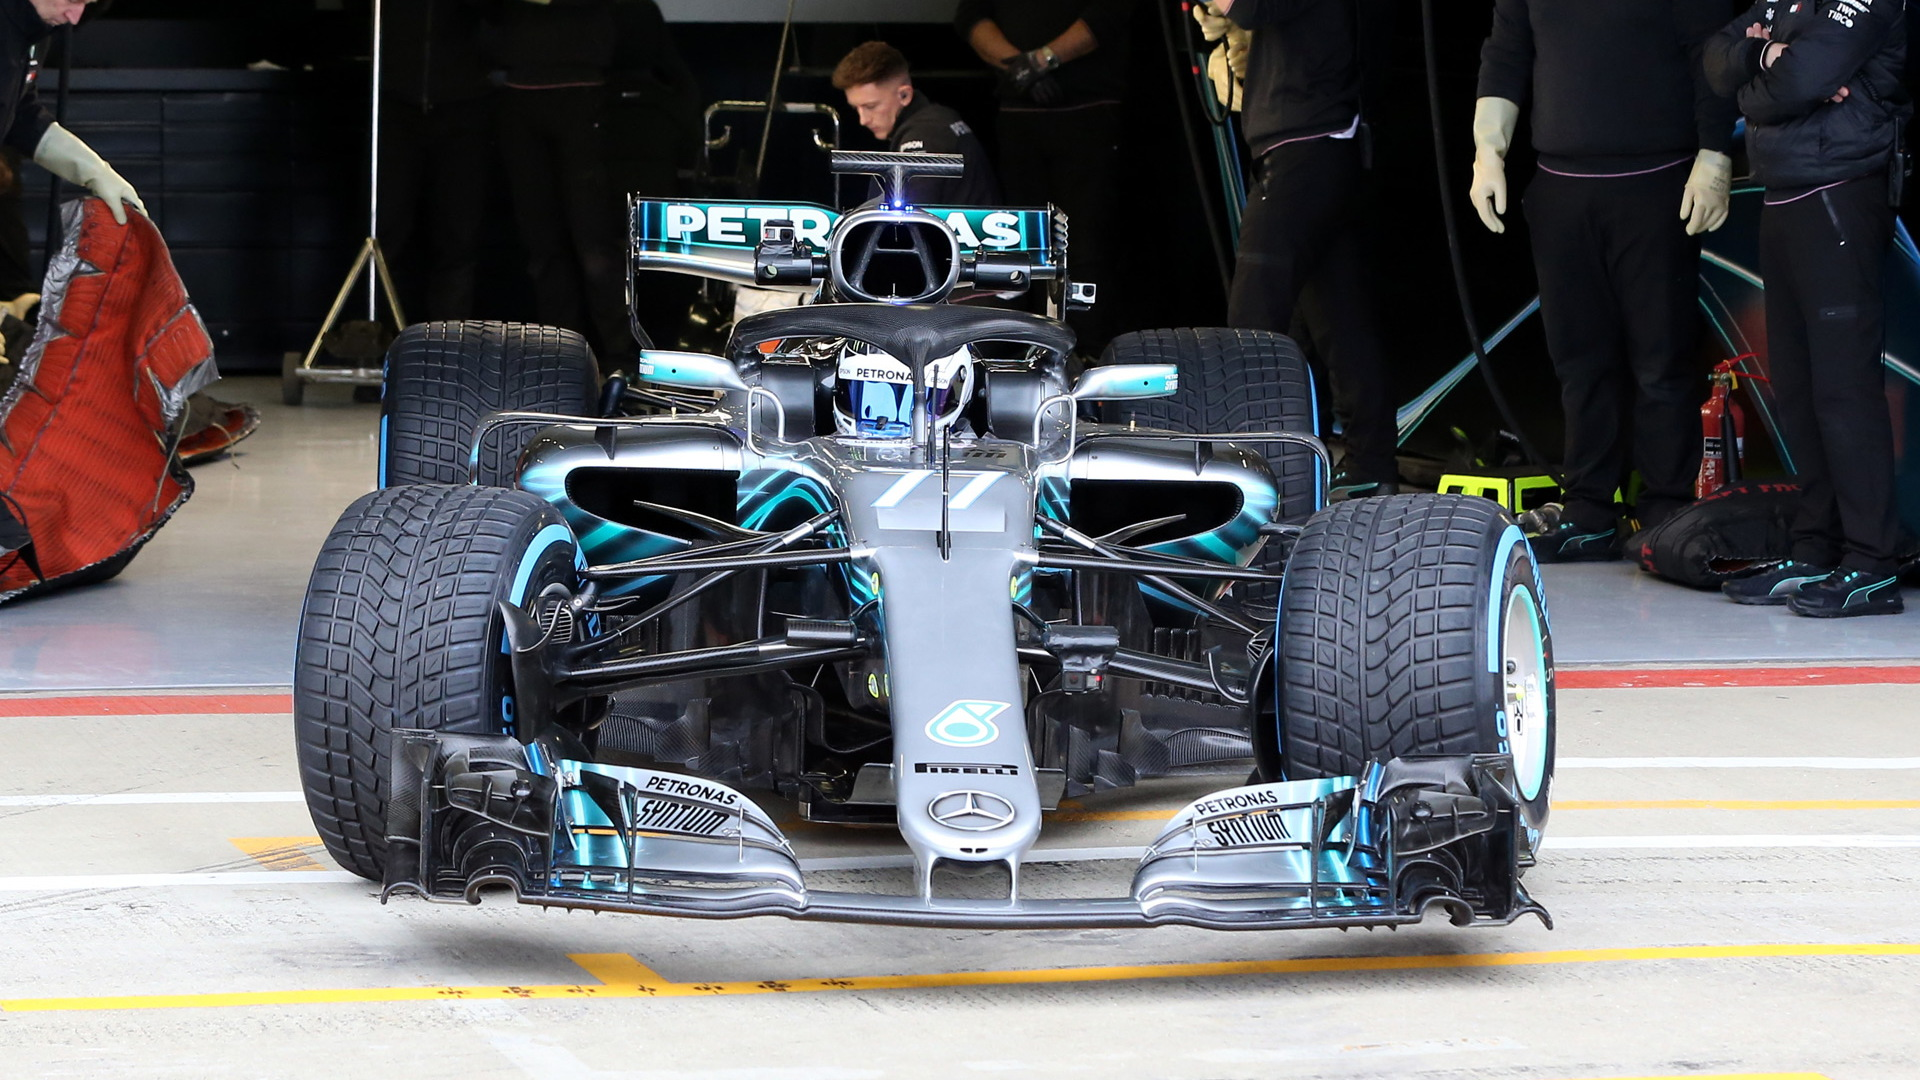 2018 Mercedes-AMG W09 EQ Power+ Formula 1 race car